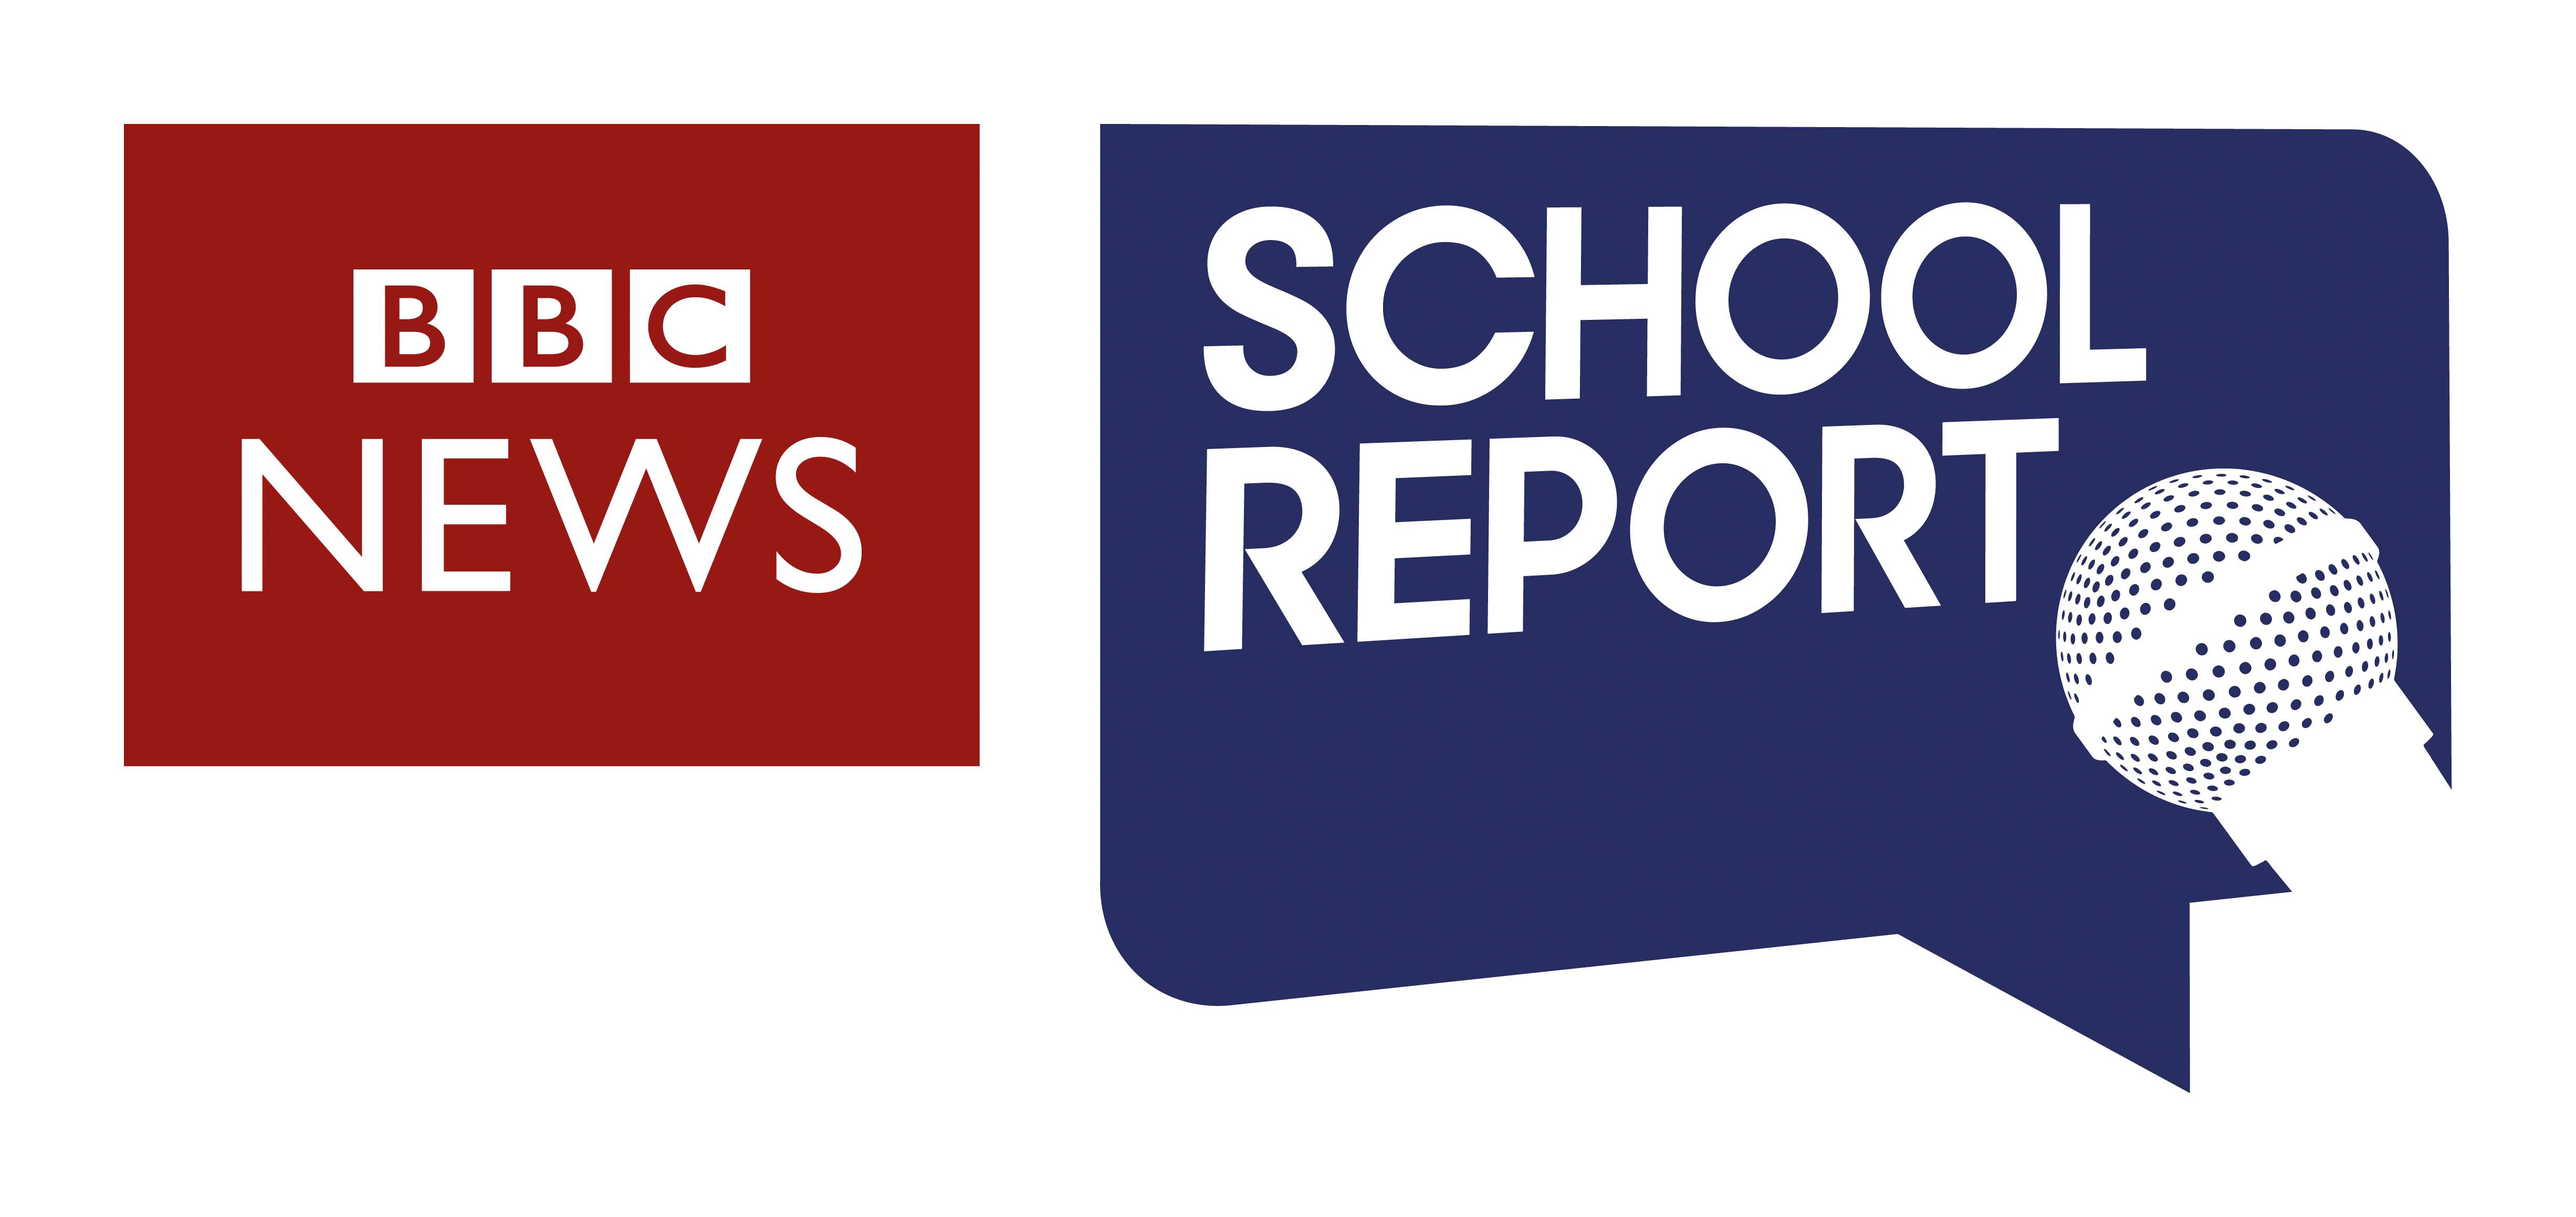 school report and bbc news block